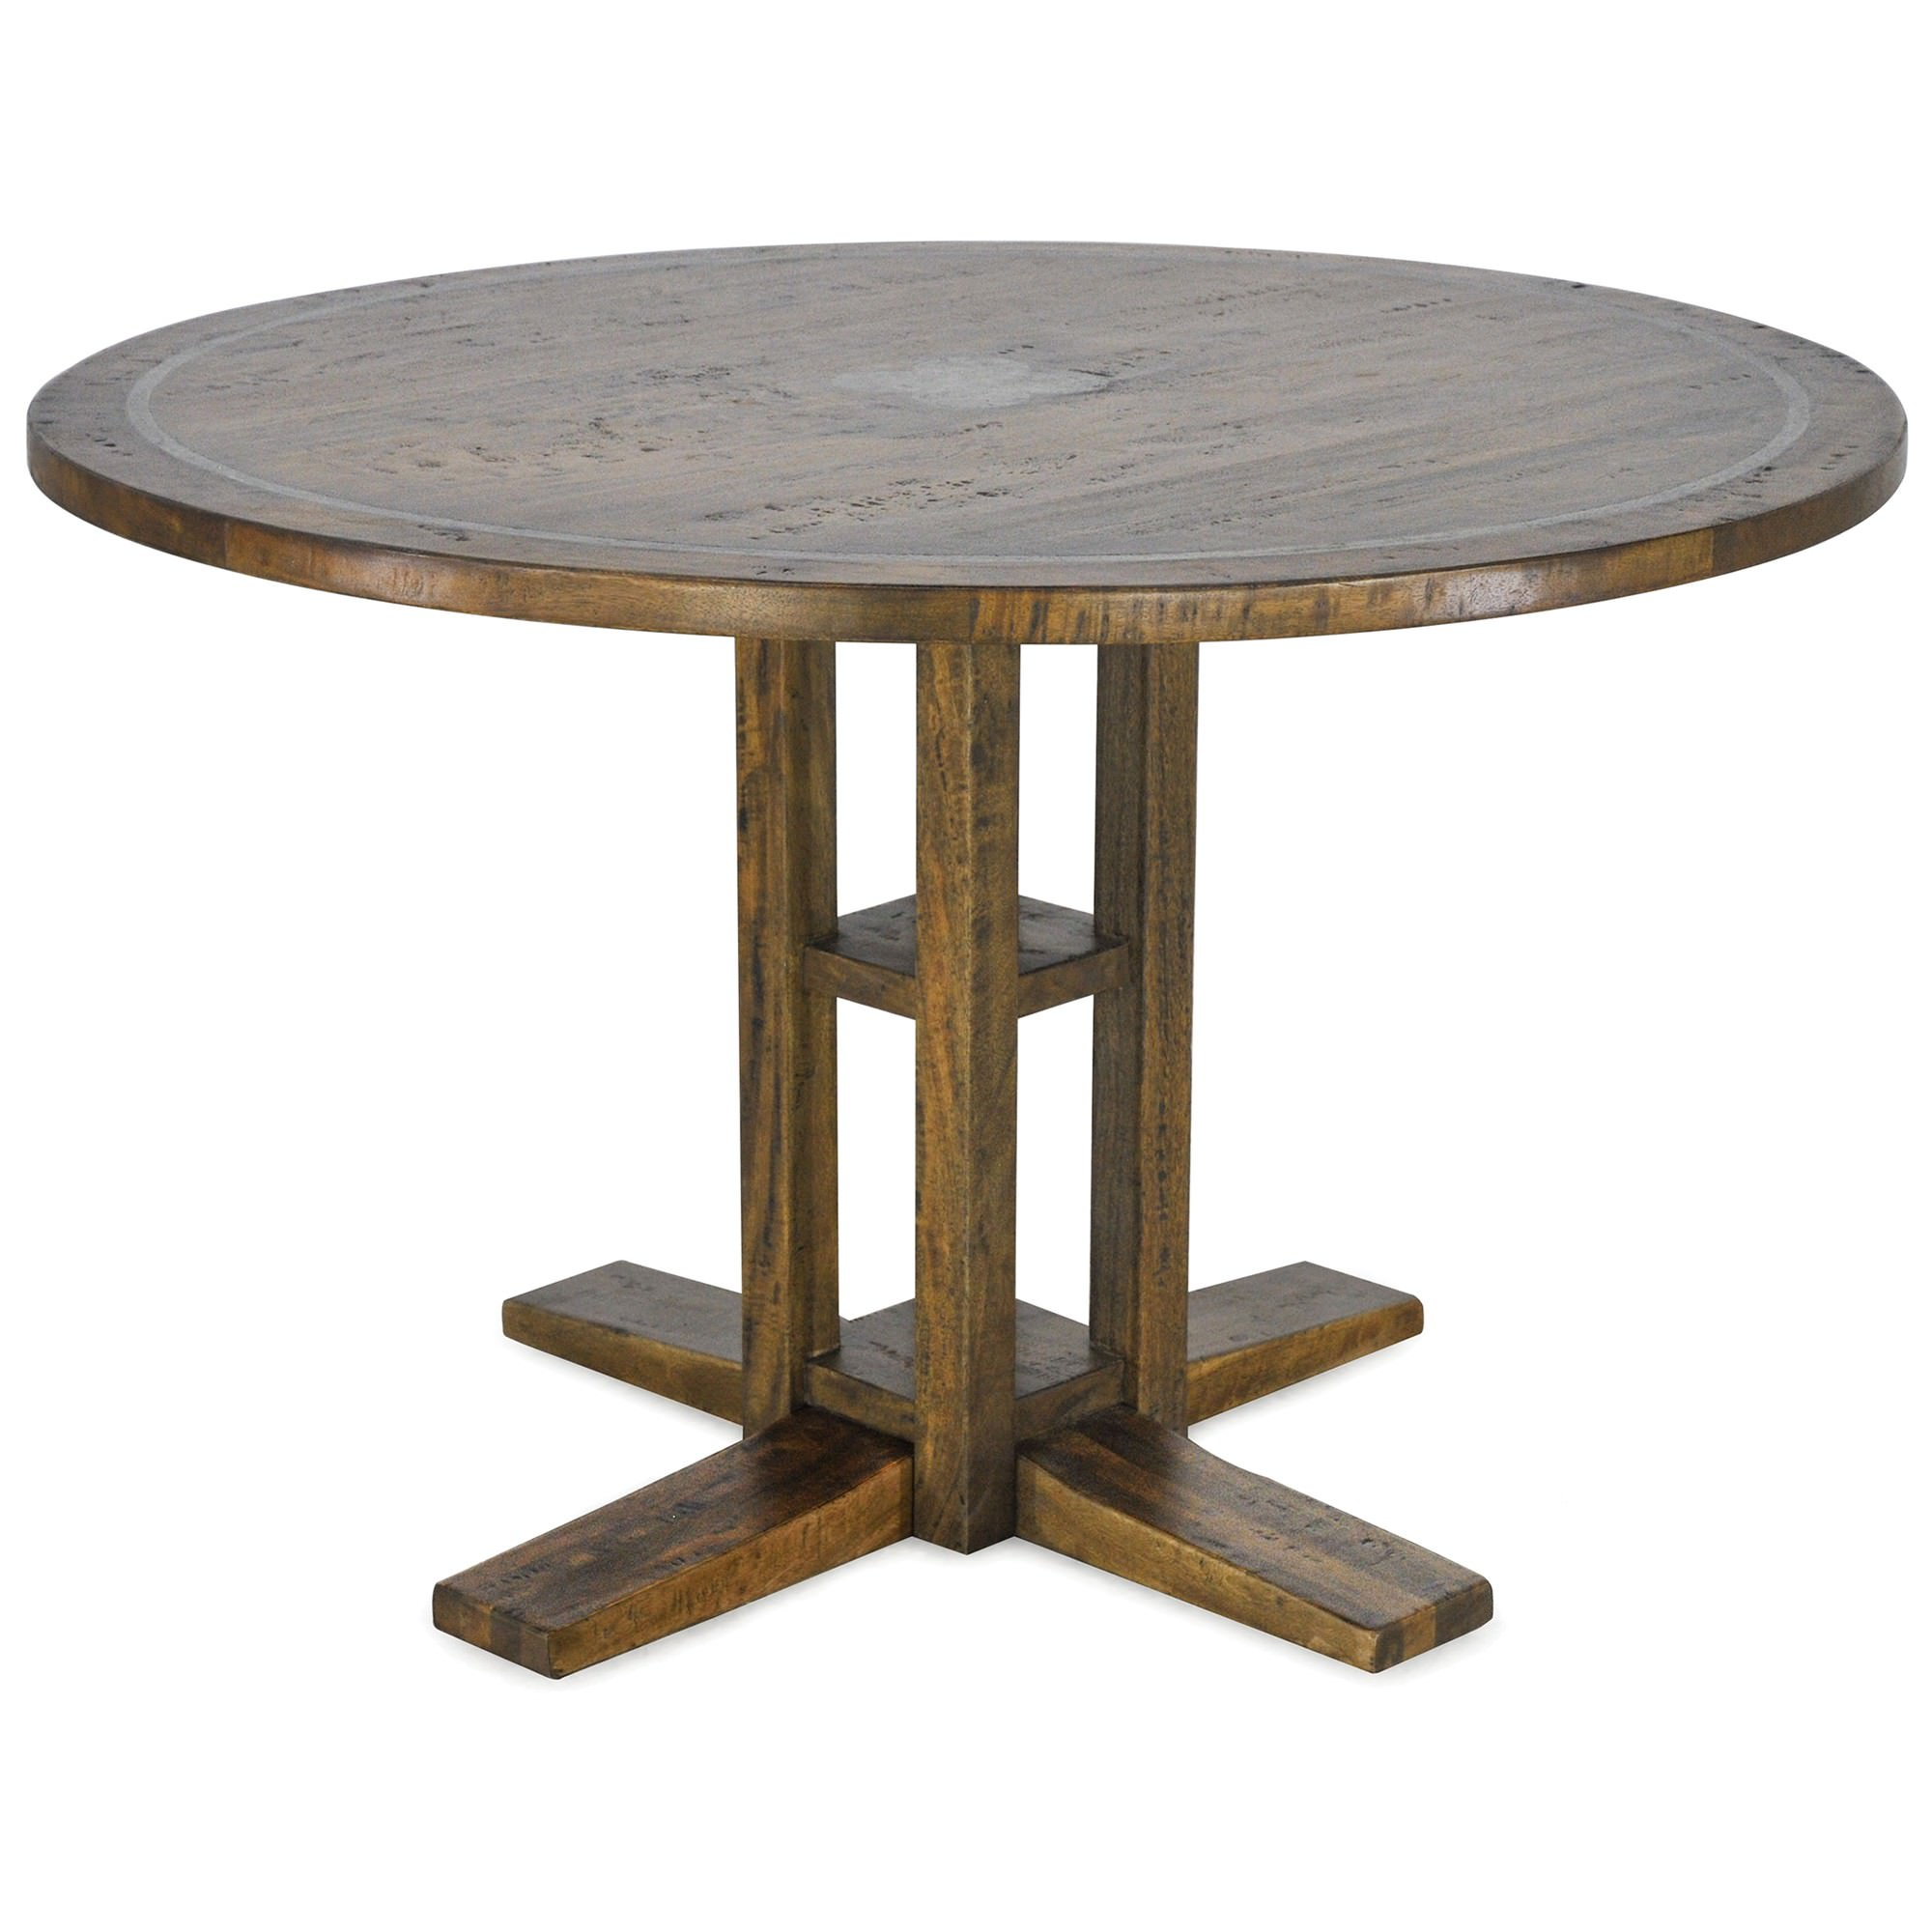 Jersey Mango Wood Round Dining Table, 120cm